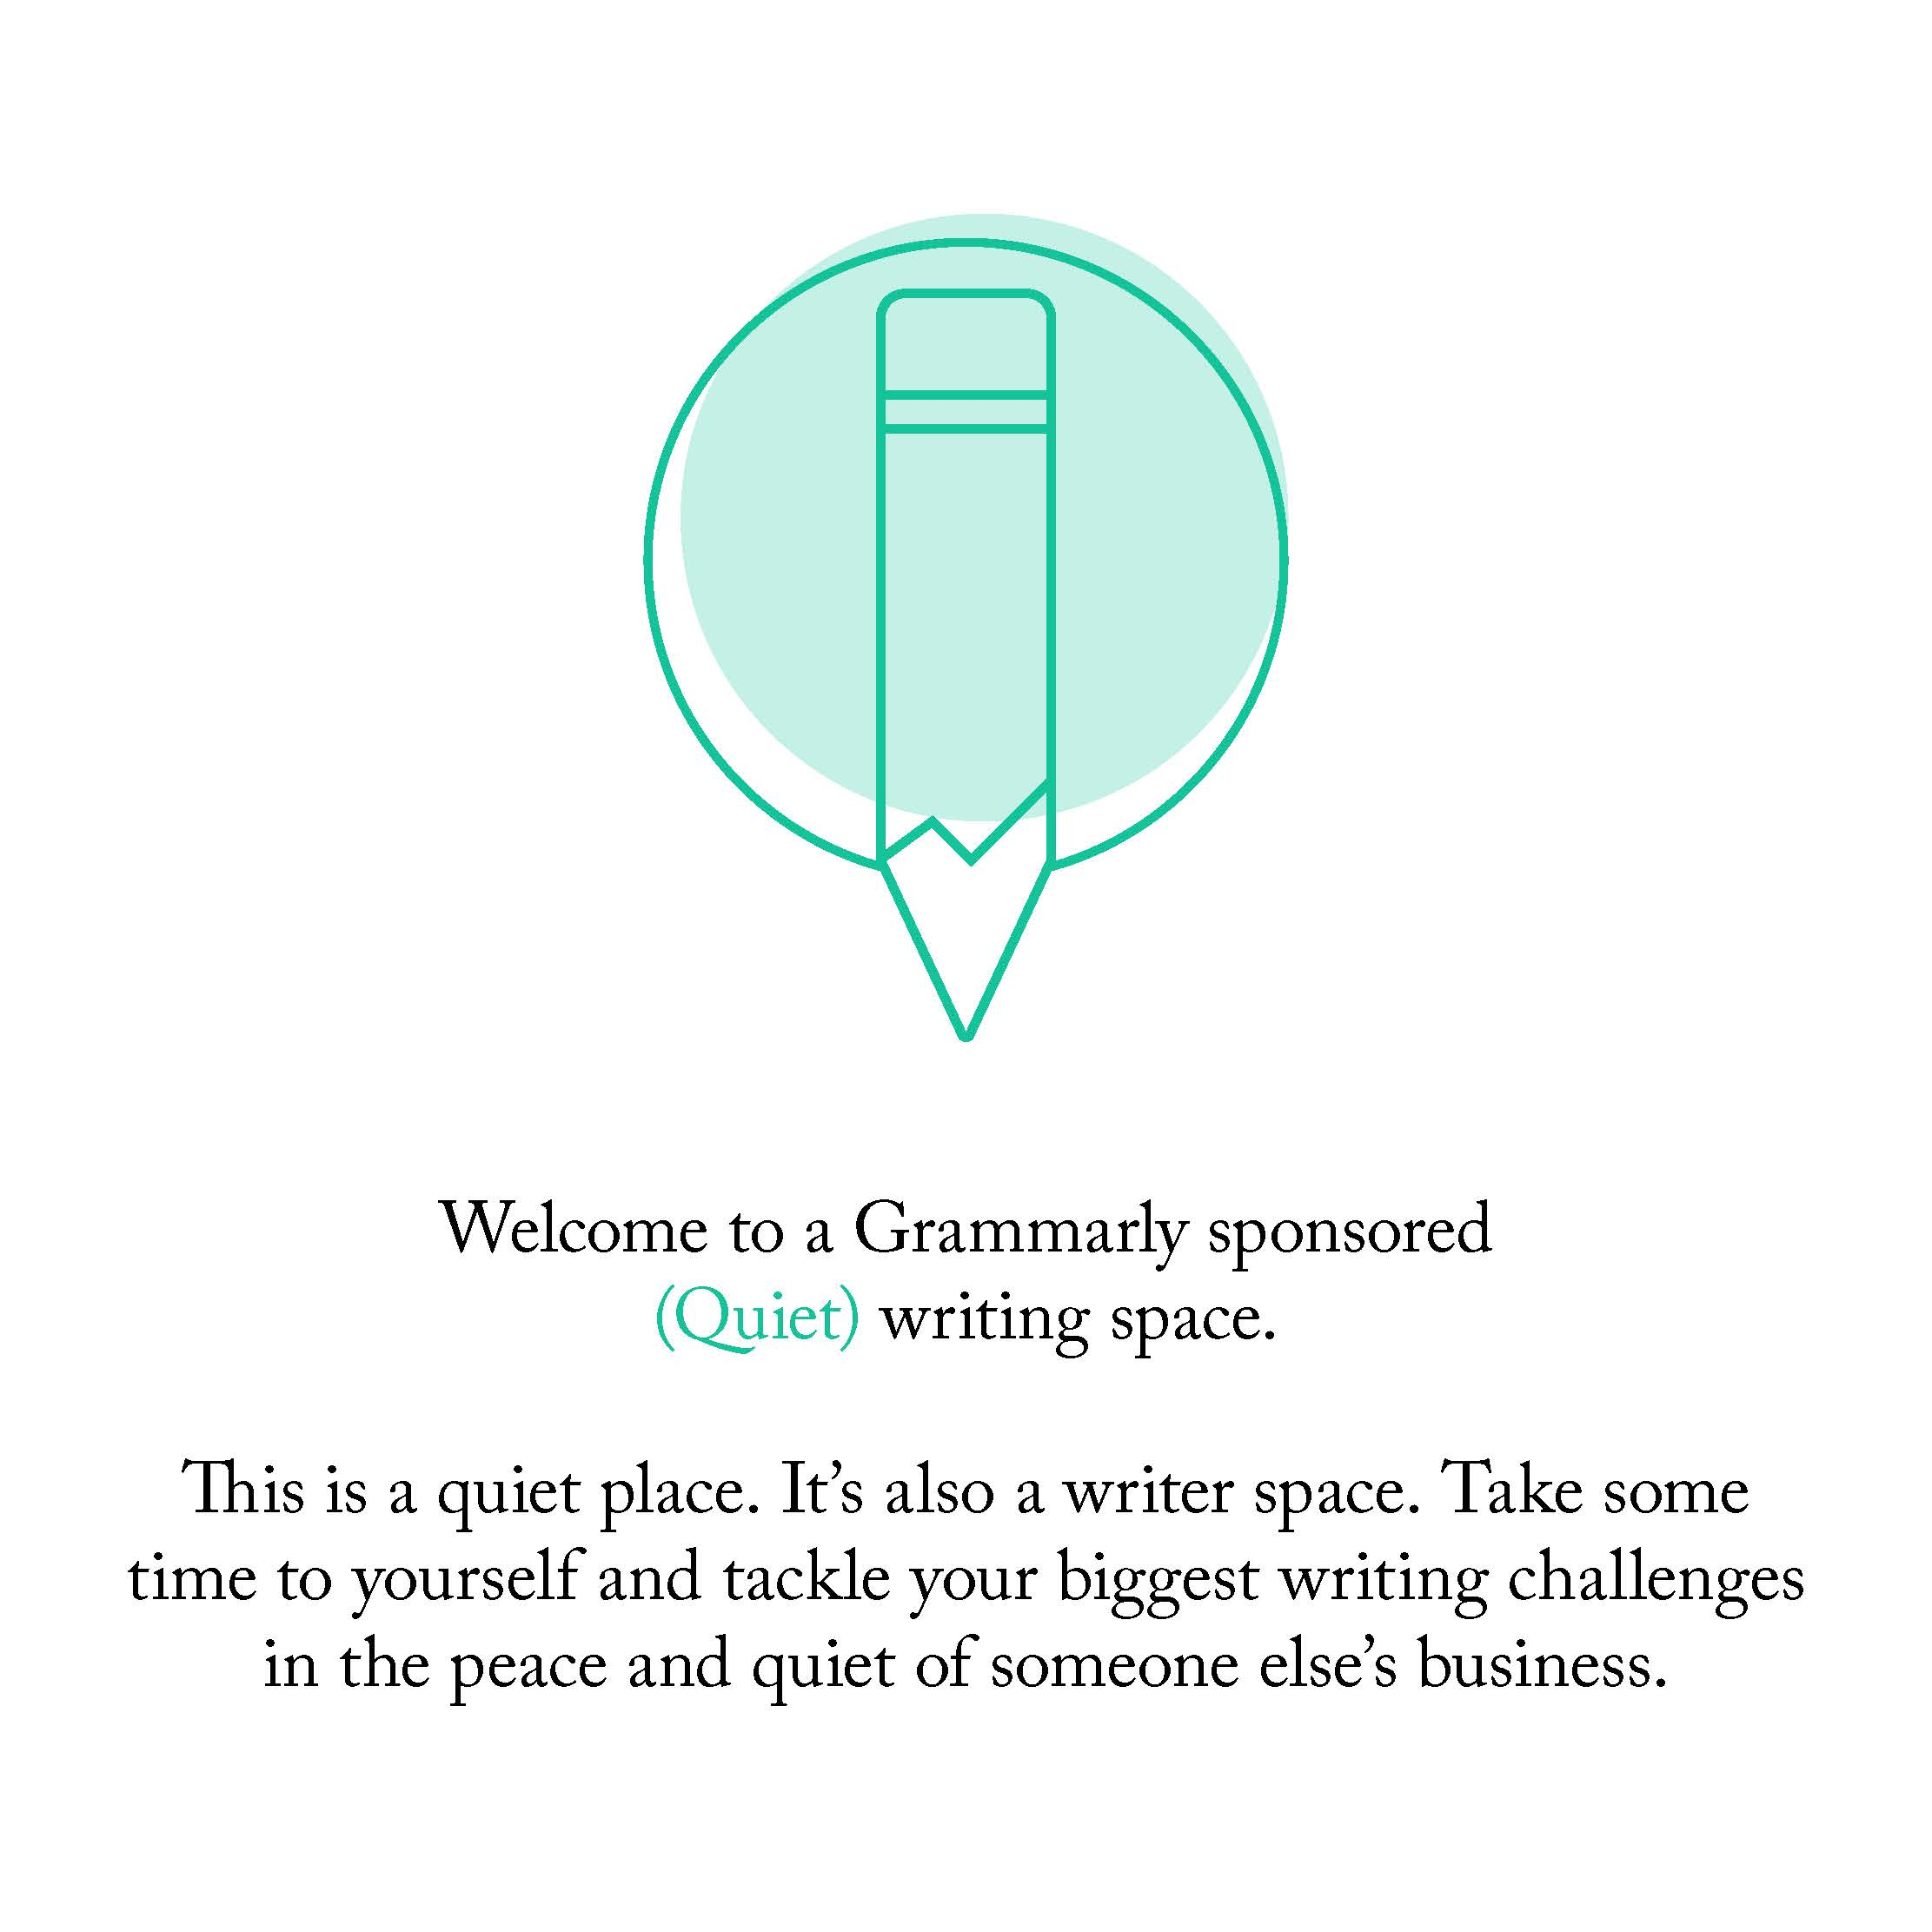 Grammarly_Icon_Page_3.jpg